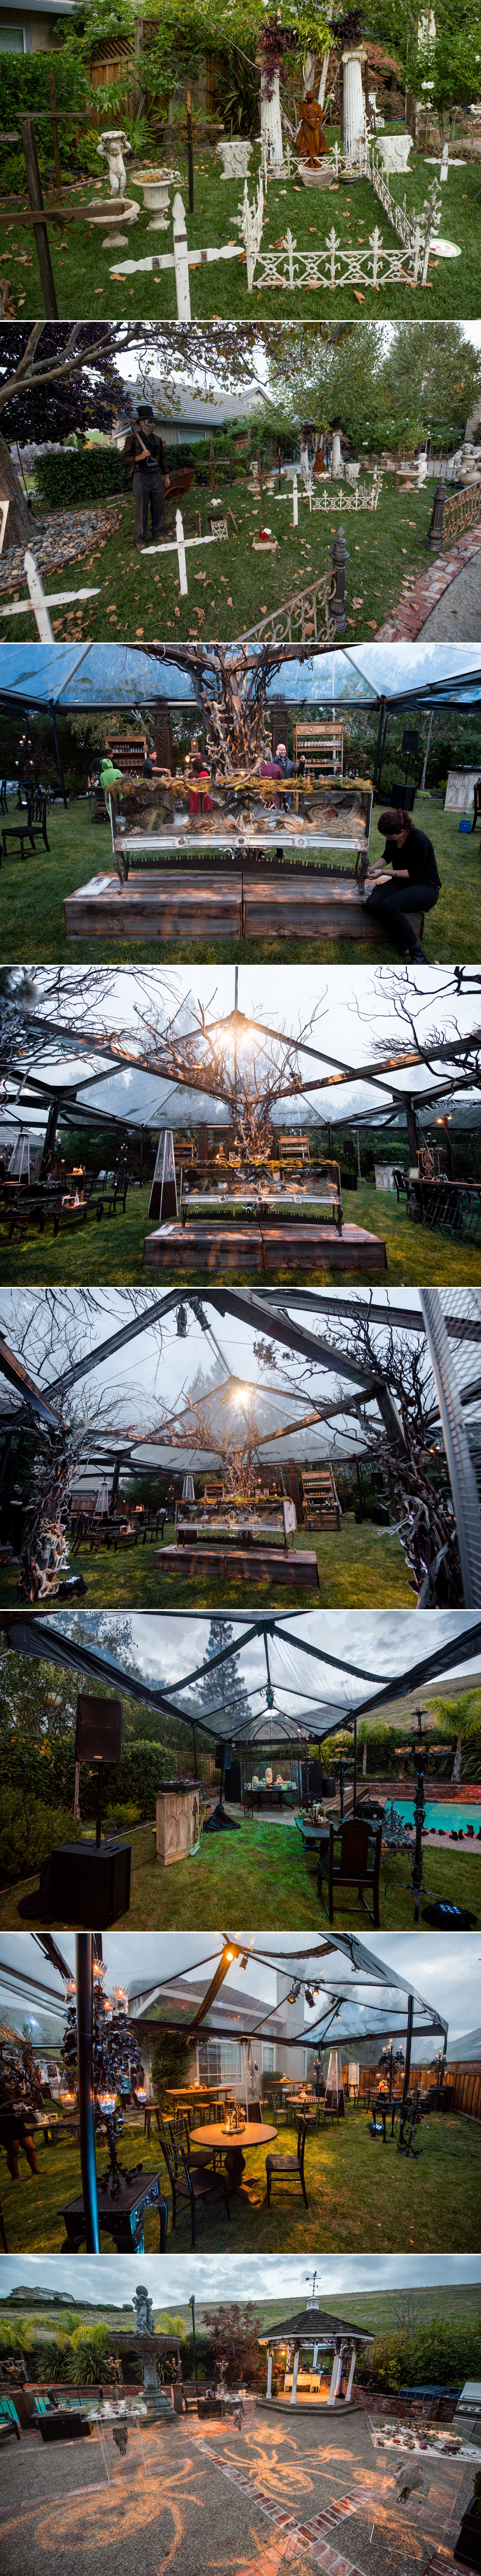 halloween-party-planned-by-f-duncan-reyes-events-by-design-and-designed-by-asiel-design-300